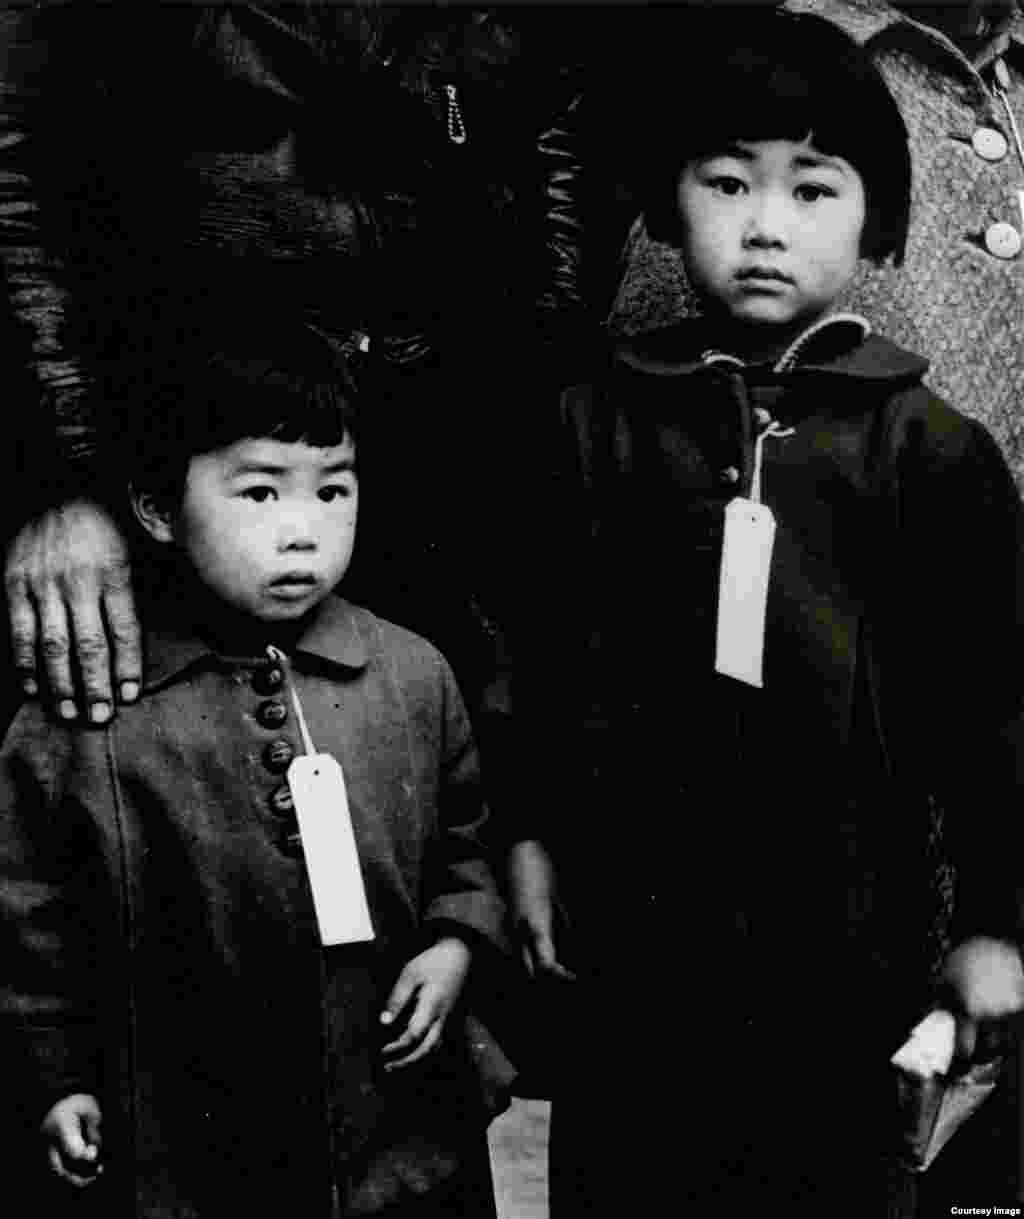 """Enforcement of Executive Order 9066: Japanese Children Made to Wear Identification Tags"" by Dorothea Lange, Hayward, California, 1942 (Photo credit: The Bancroft Library, University of California, Berkeley)"